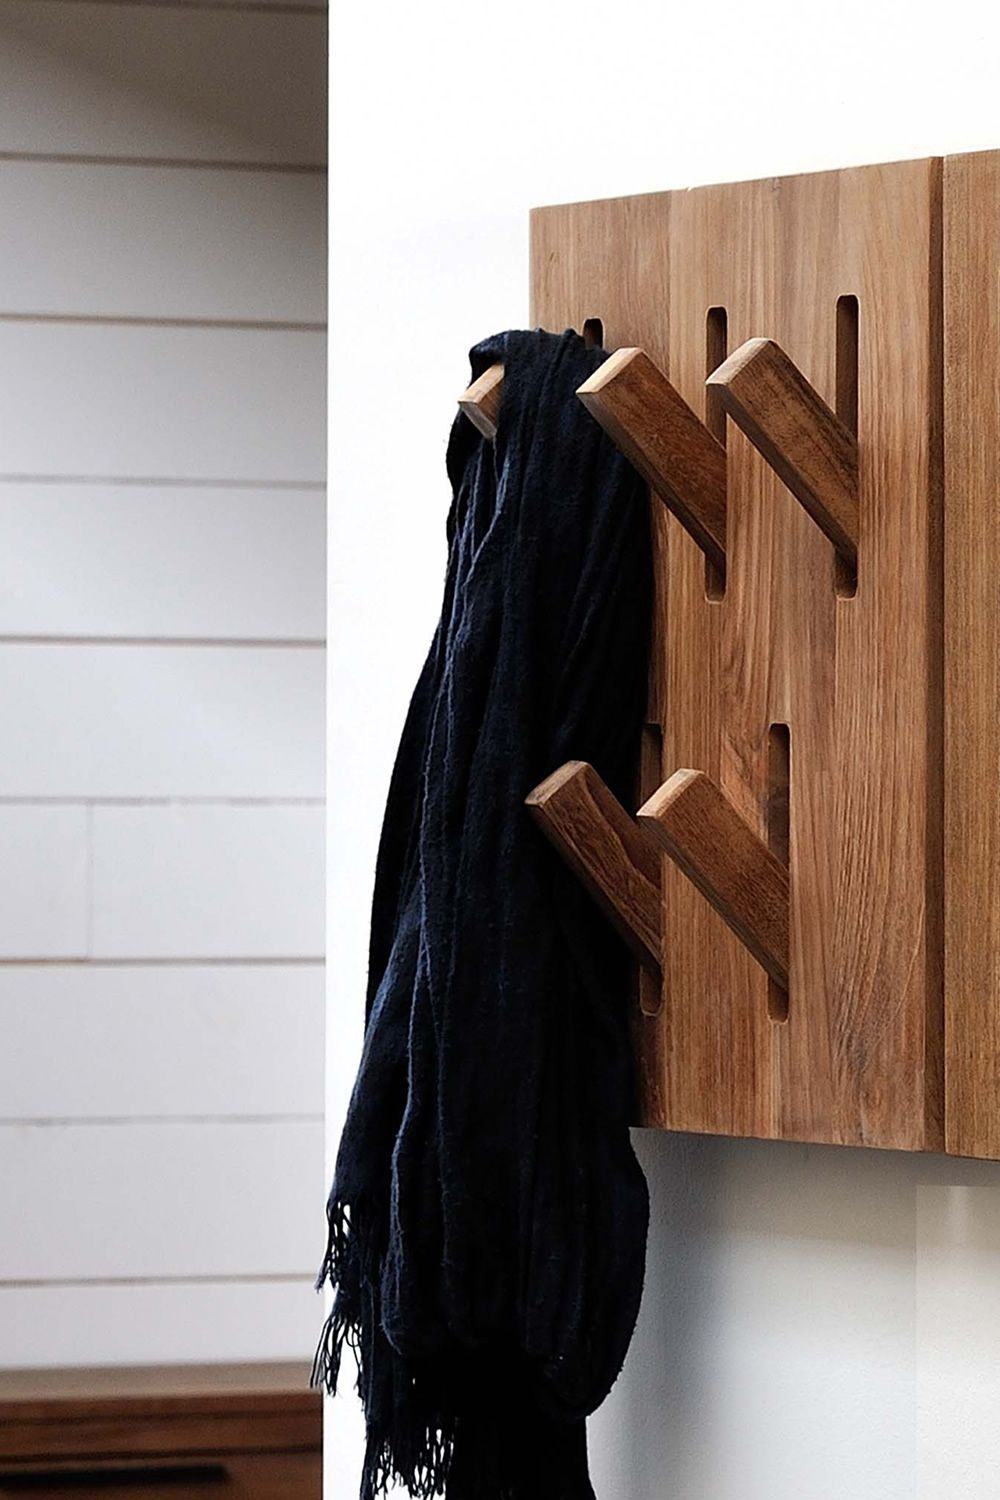 Utilitle H Ethnicraft Wall Coat Rack Made Of Wood With